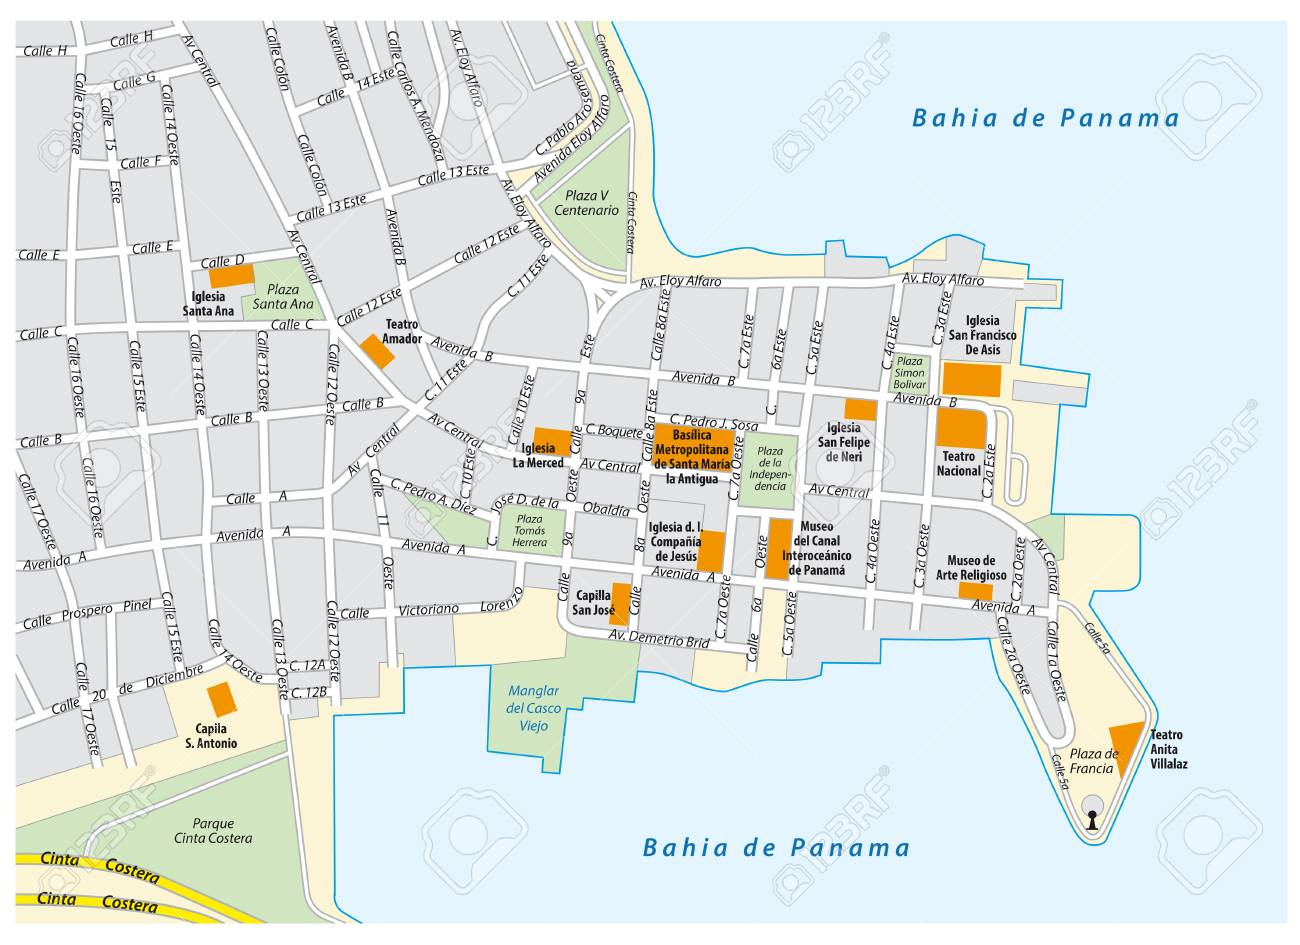 Road map of the old city of Panama City, Panama